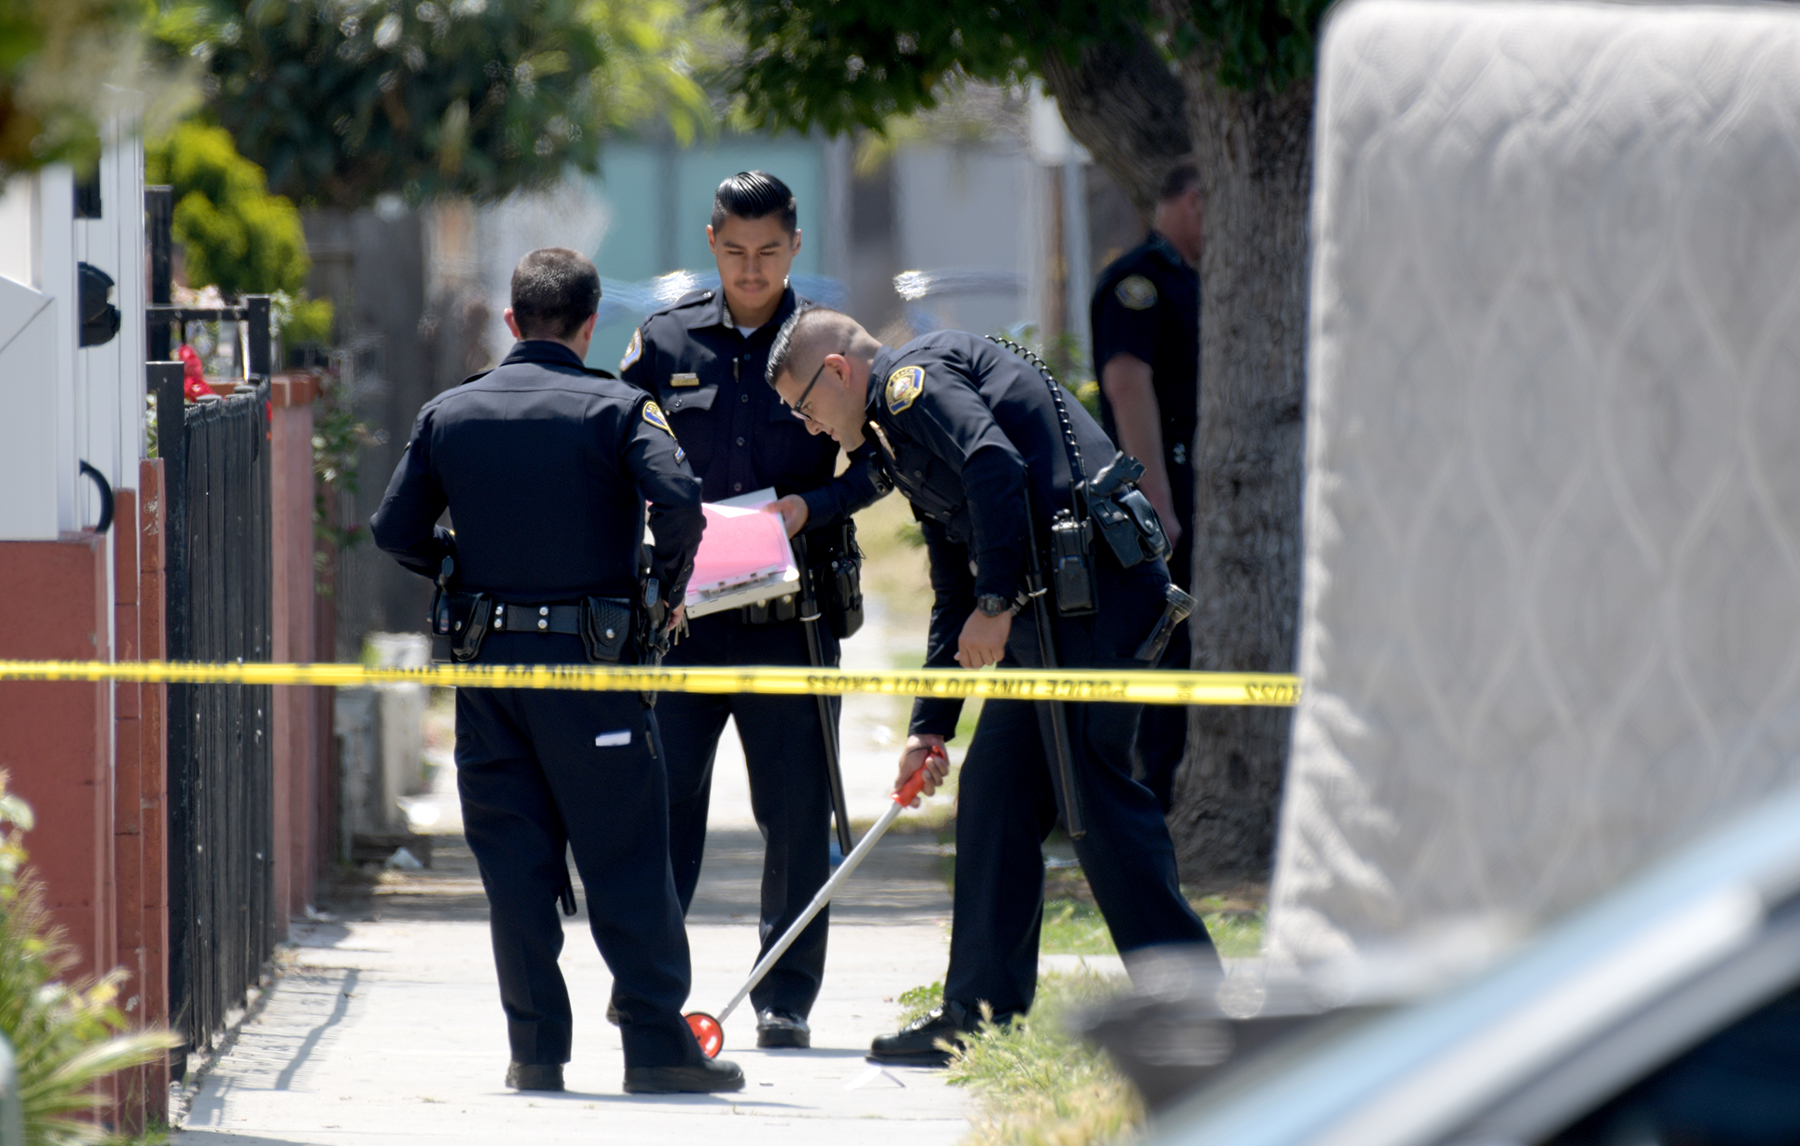 Long Beach police officers investigate a shooting where a man was shot and wounded on the 400 block of East 17th Street. Photo by Thomas R. Cordova.